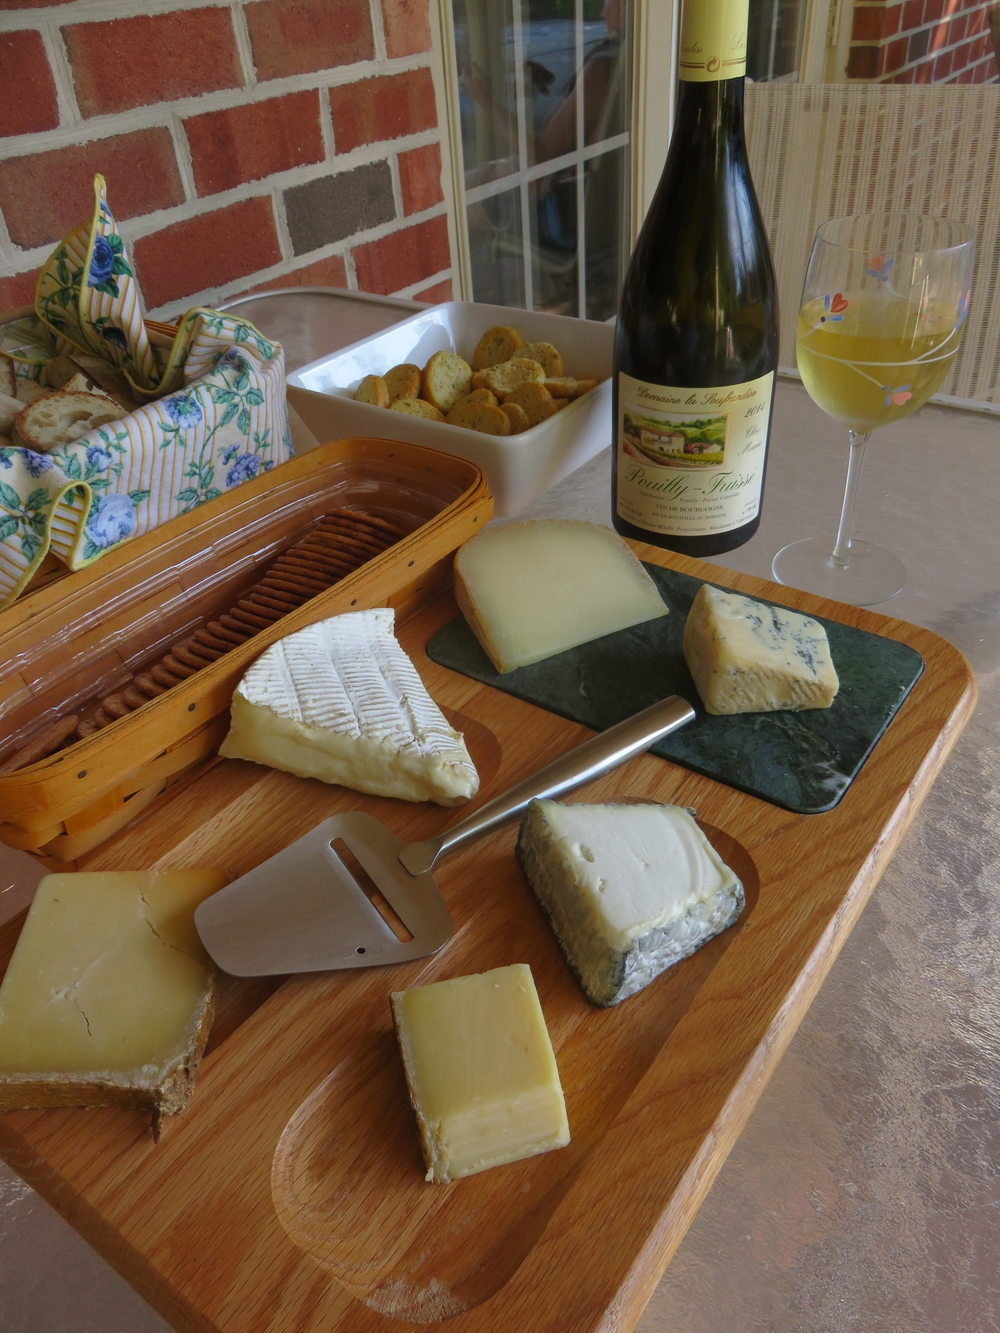 Starting from closest to the wine bottle and moving clockwise: Ossau-Iraty, Bay Blue, Valençay, Comté, Beaufort, Brie